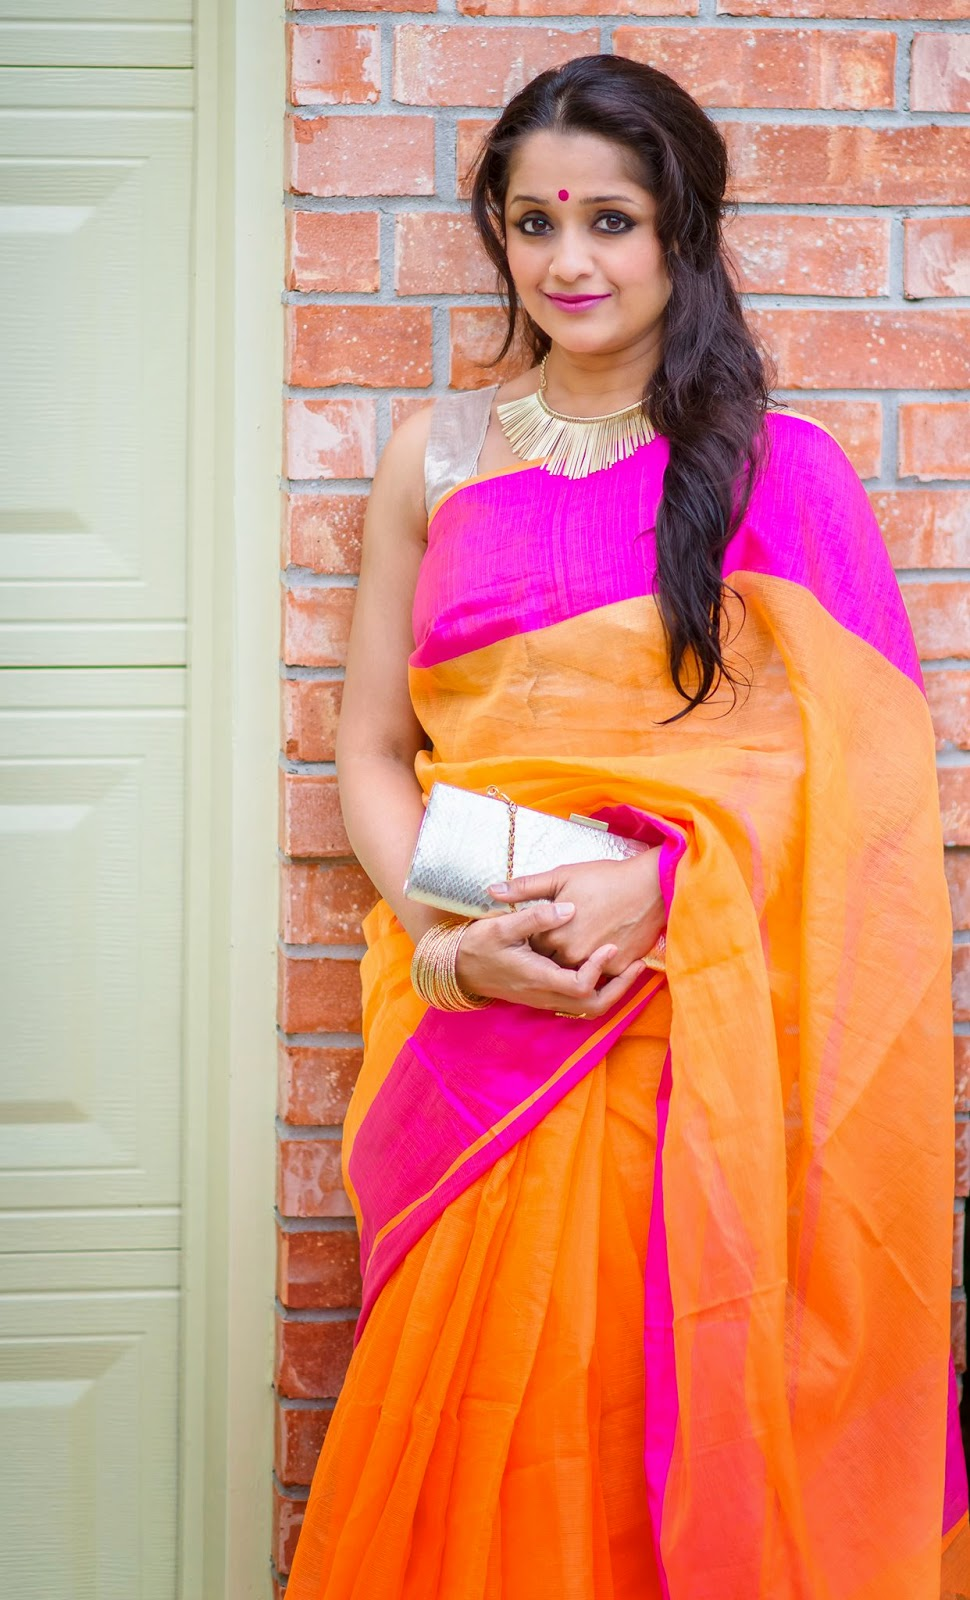 indian lady in different types of saree, indain saree, lady in sari, girl in sari, beautiful saree, saree online